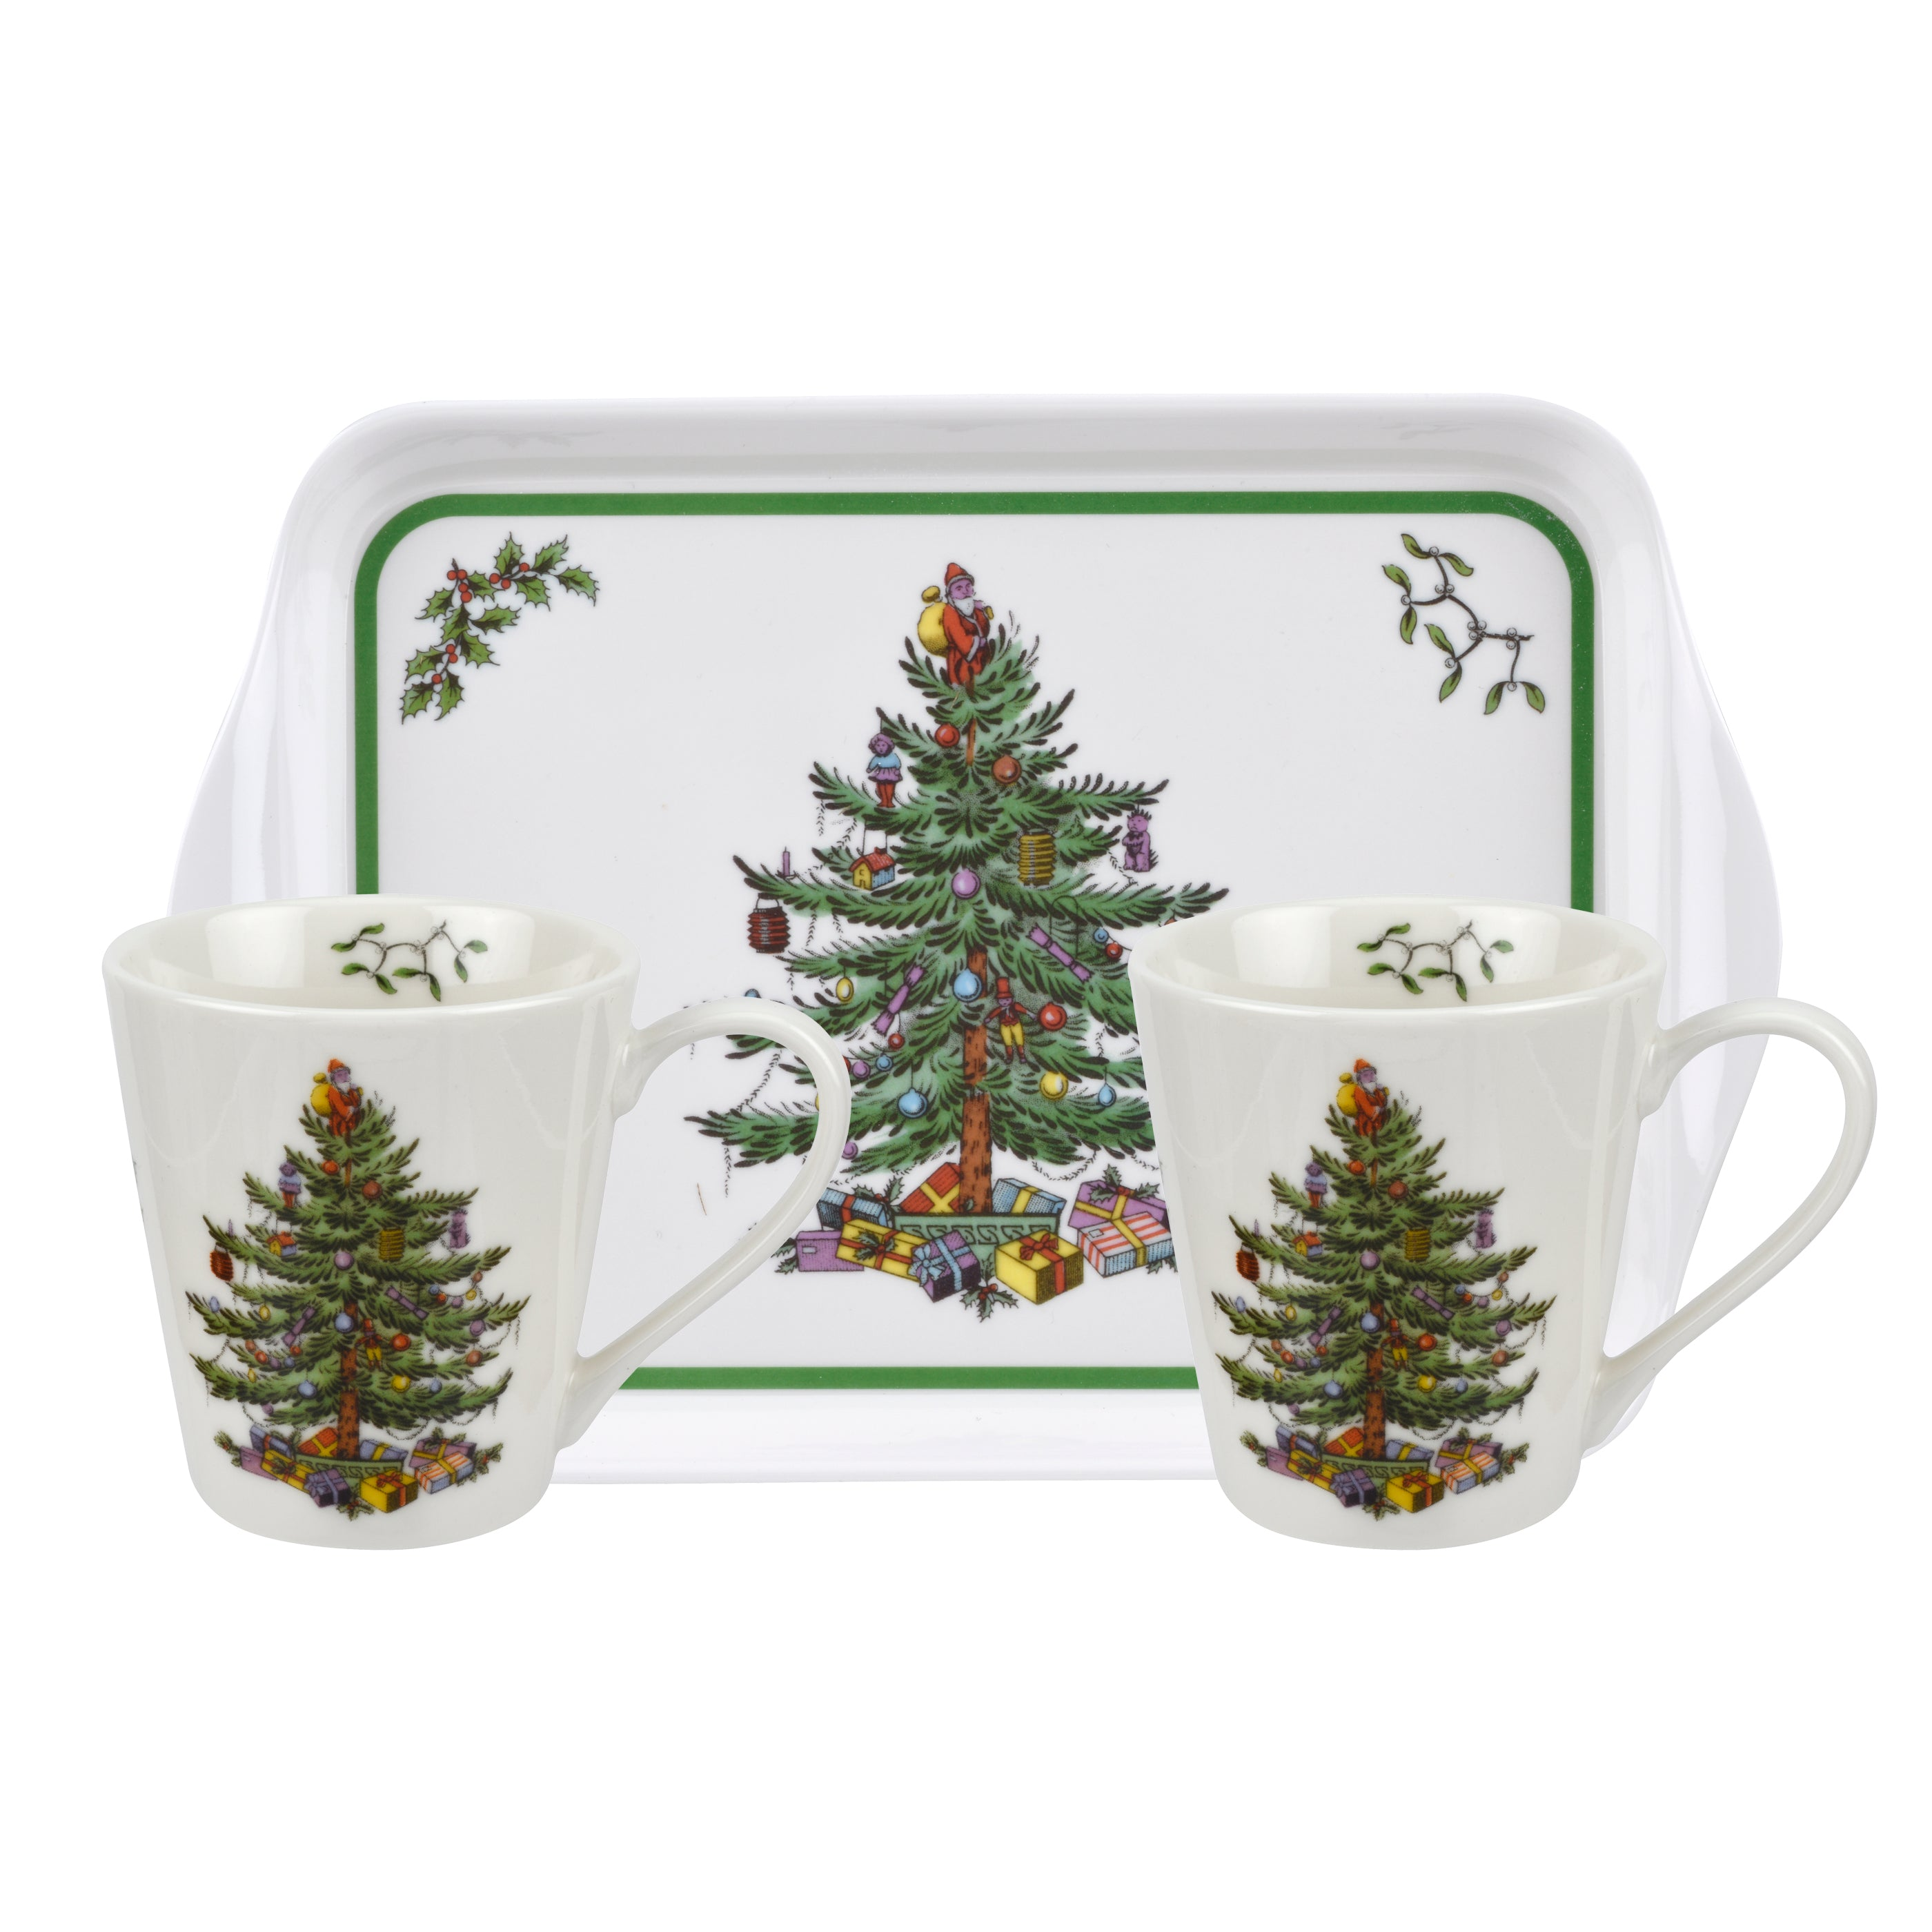 Spode Christmas Tree Mug & Tray Set – House of Portmeirion